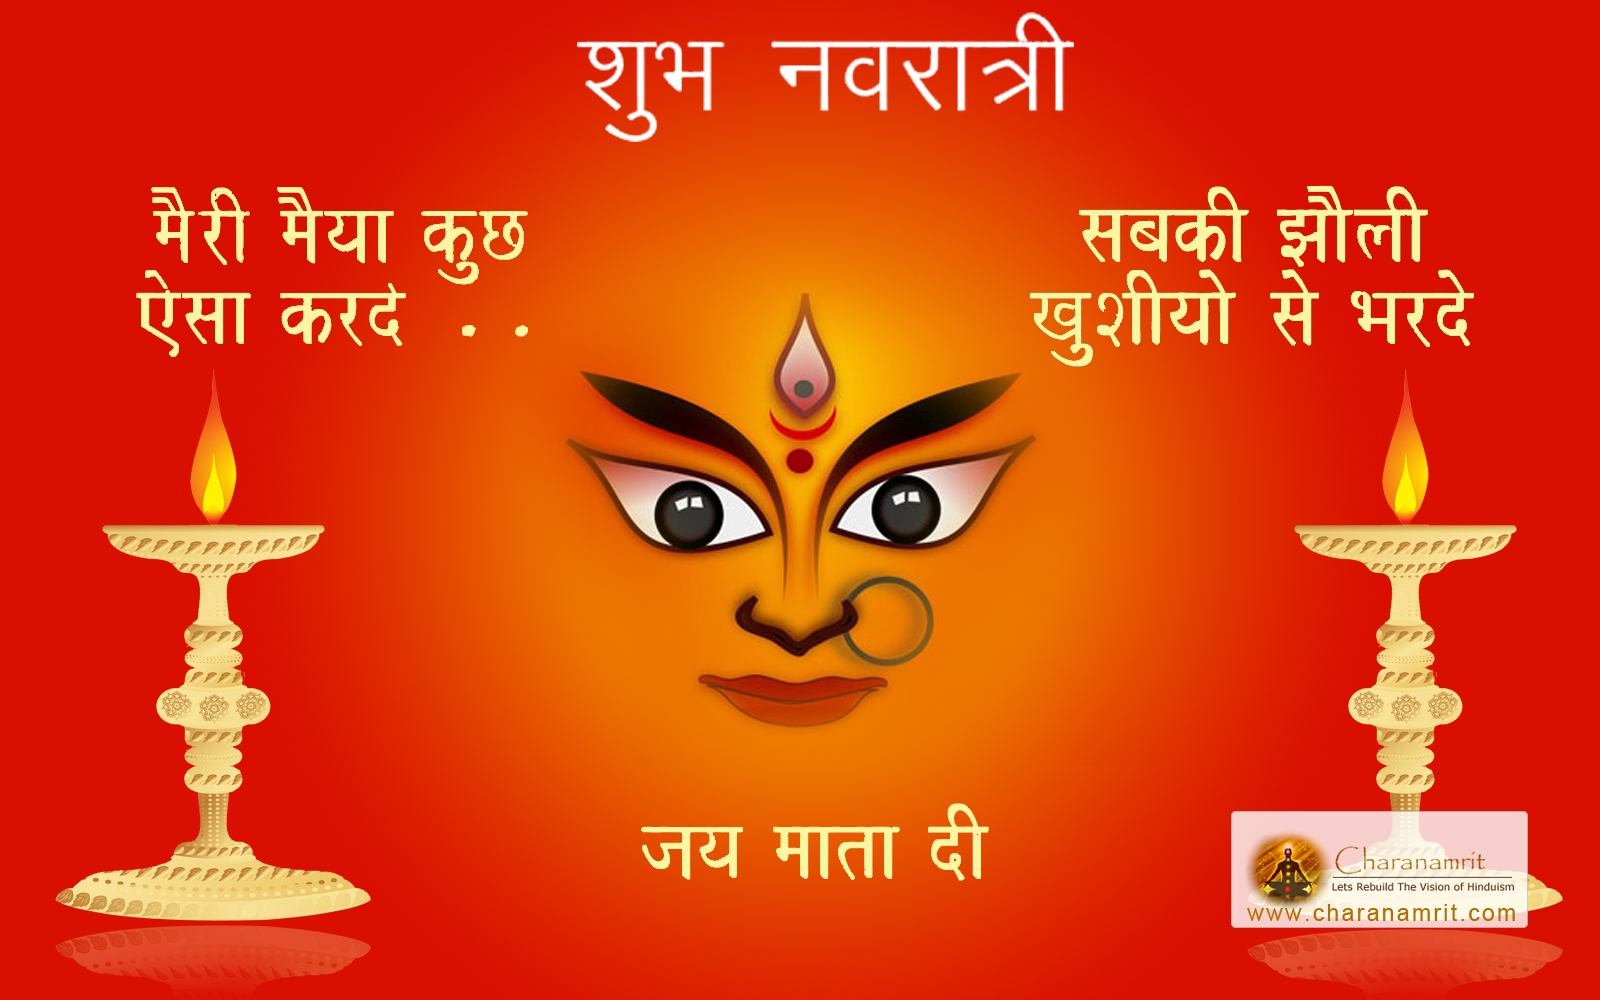 Happy Navratri 2016 for you